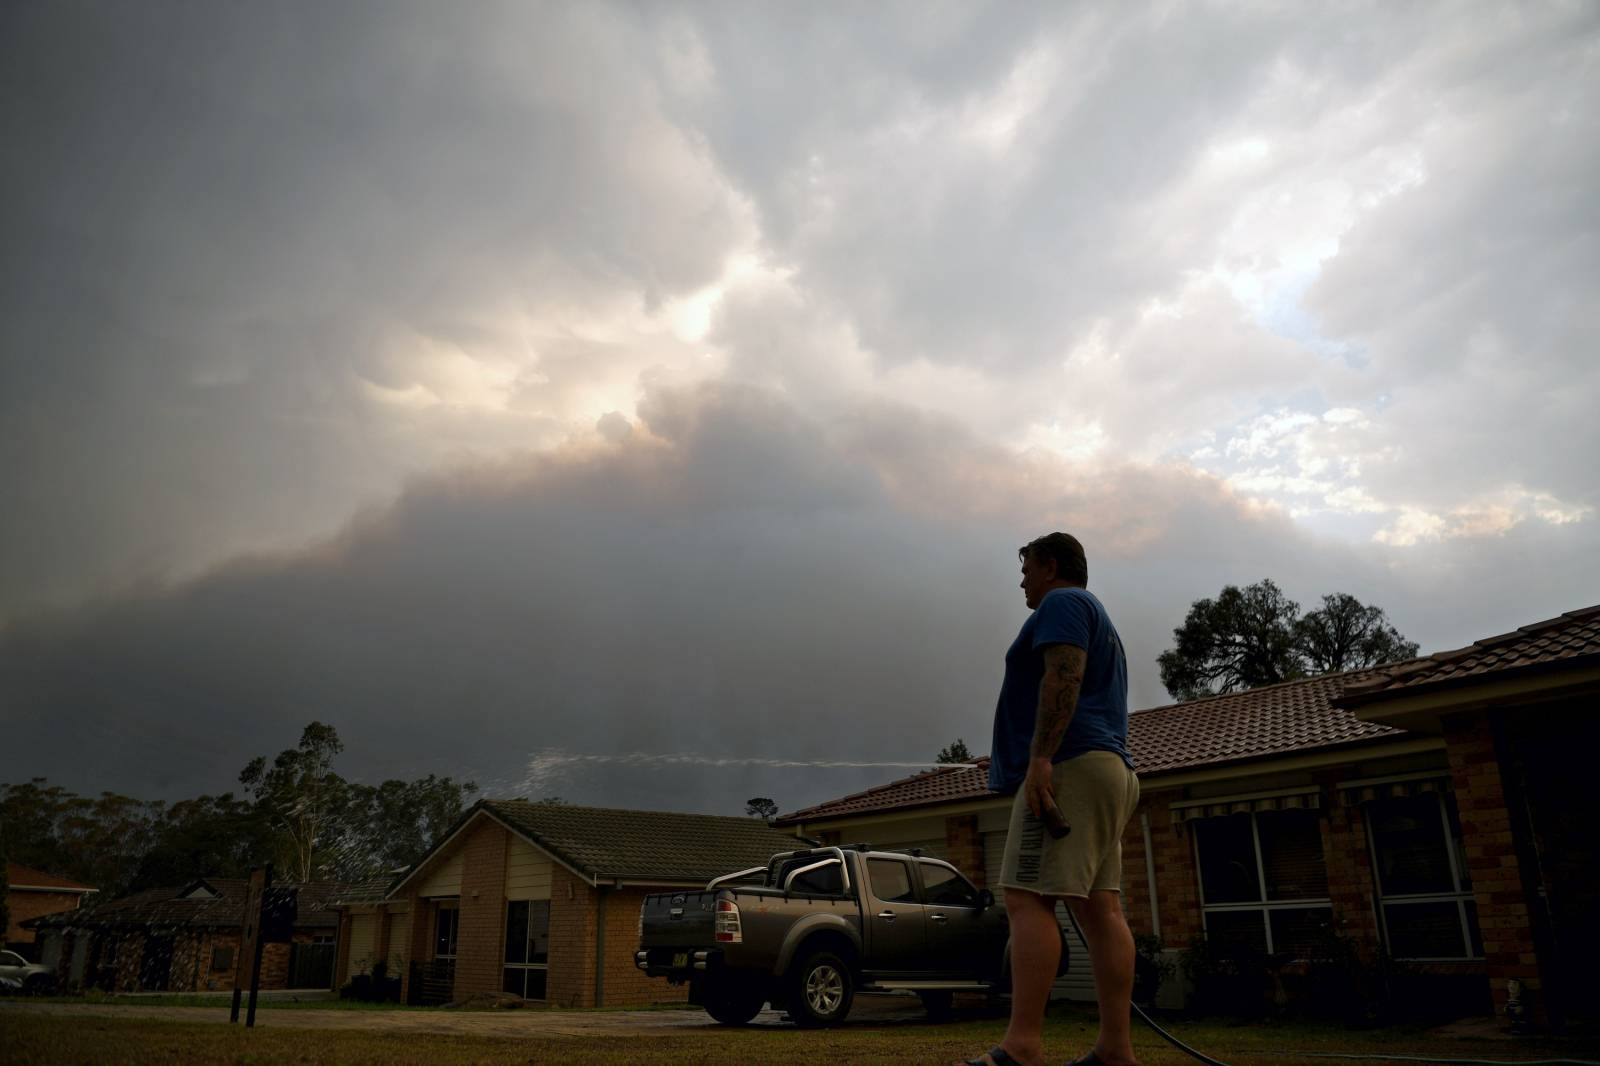 Bushfires in Nowra, New South Wales